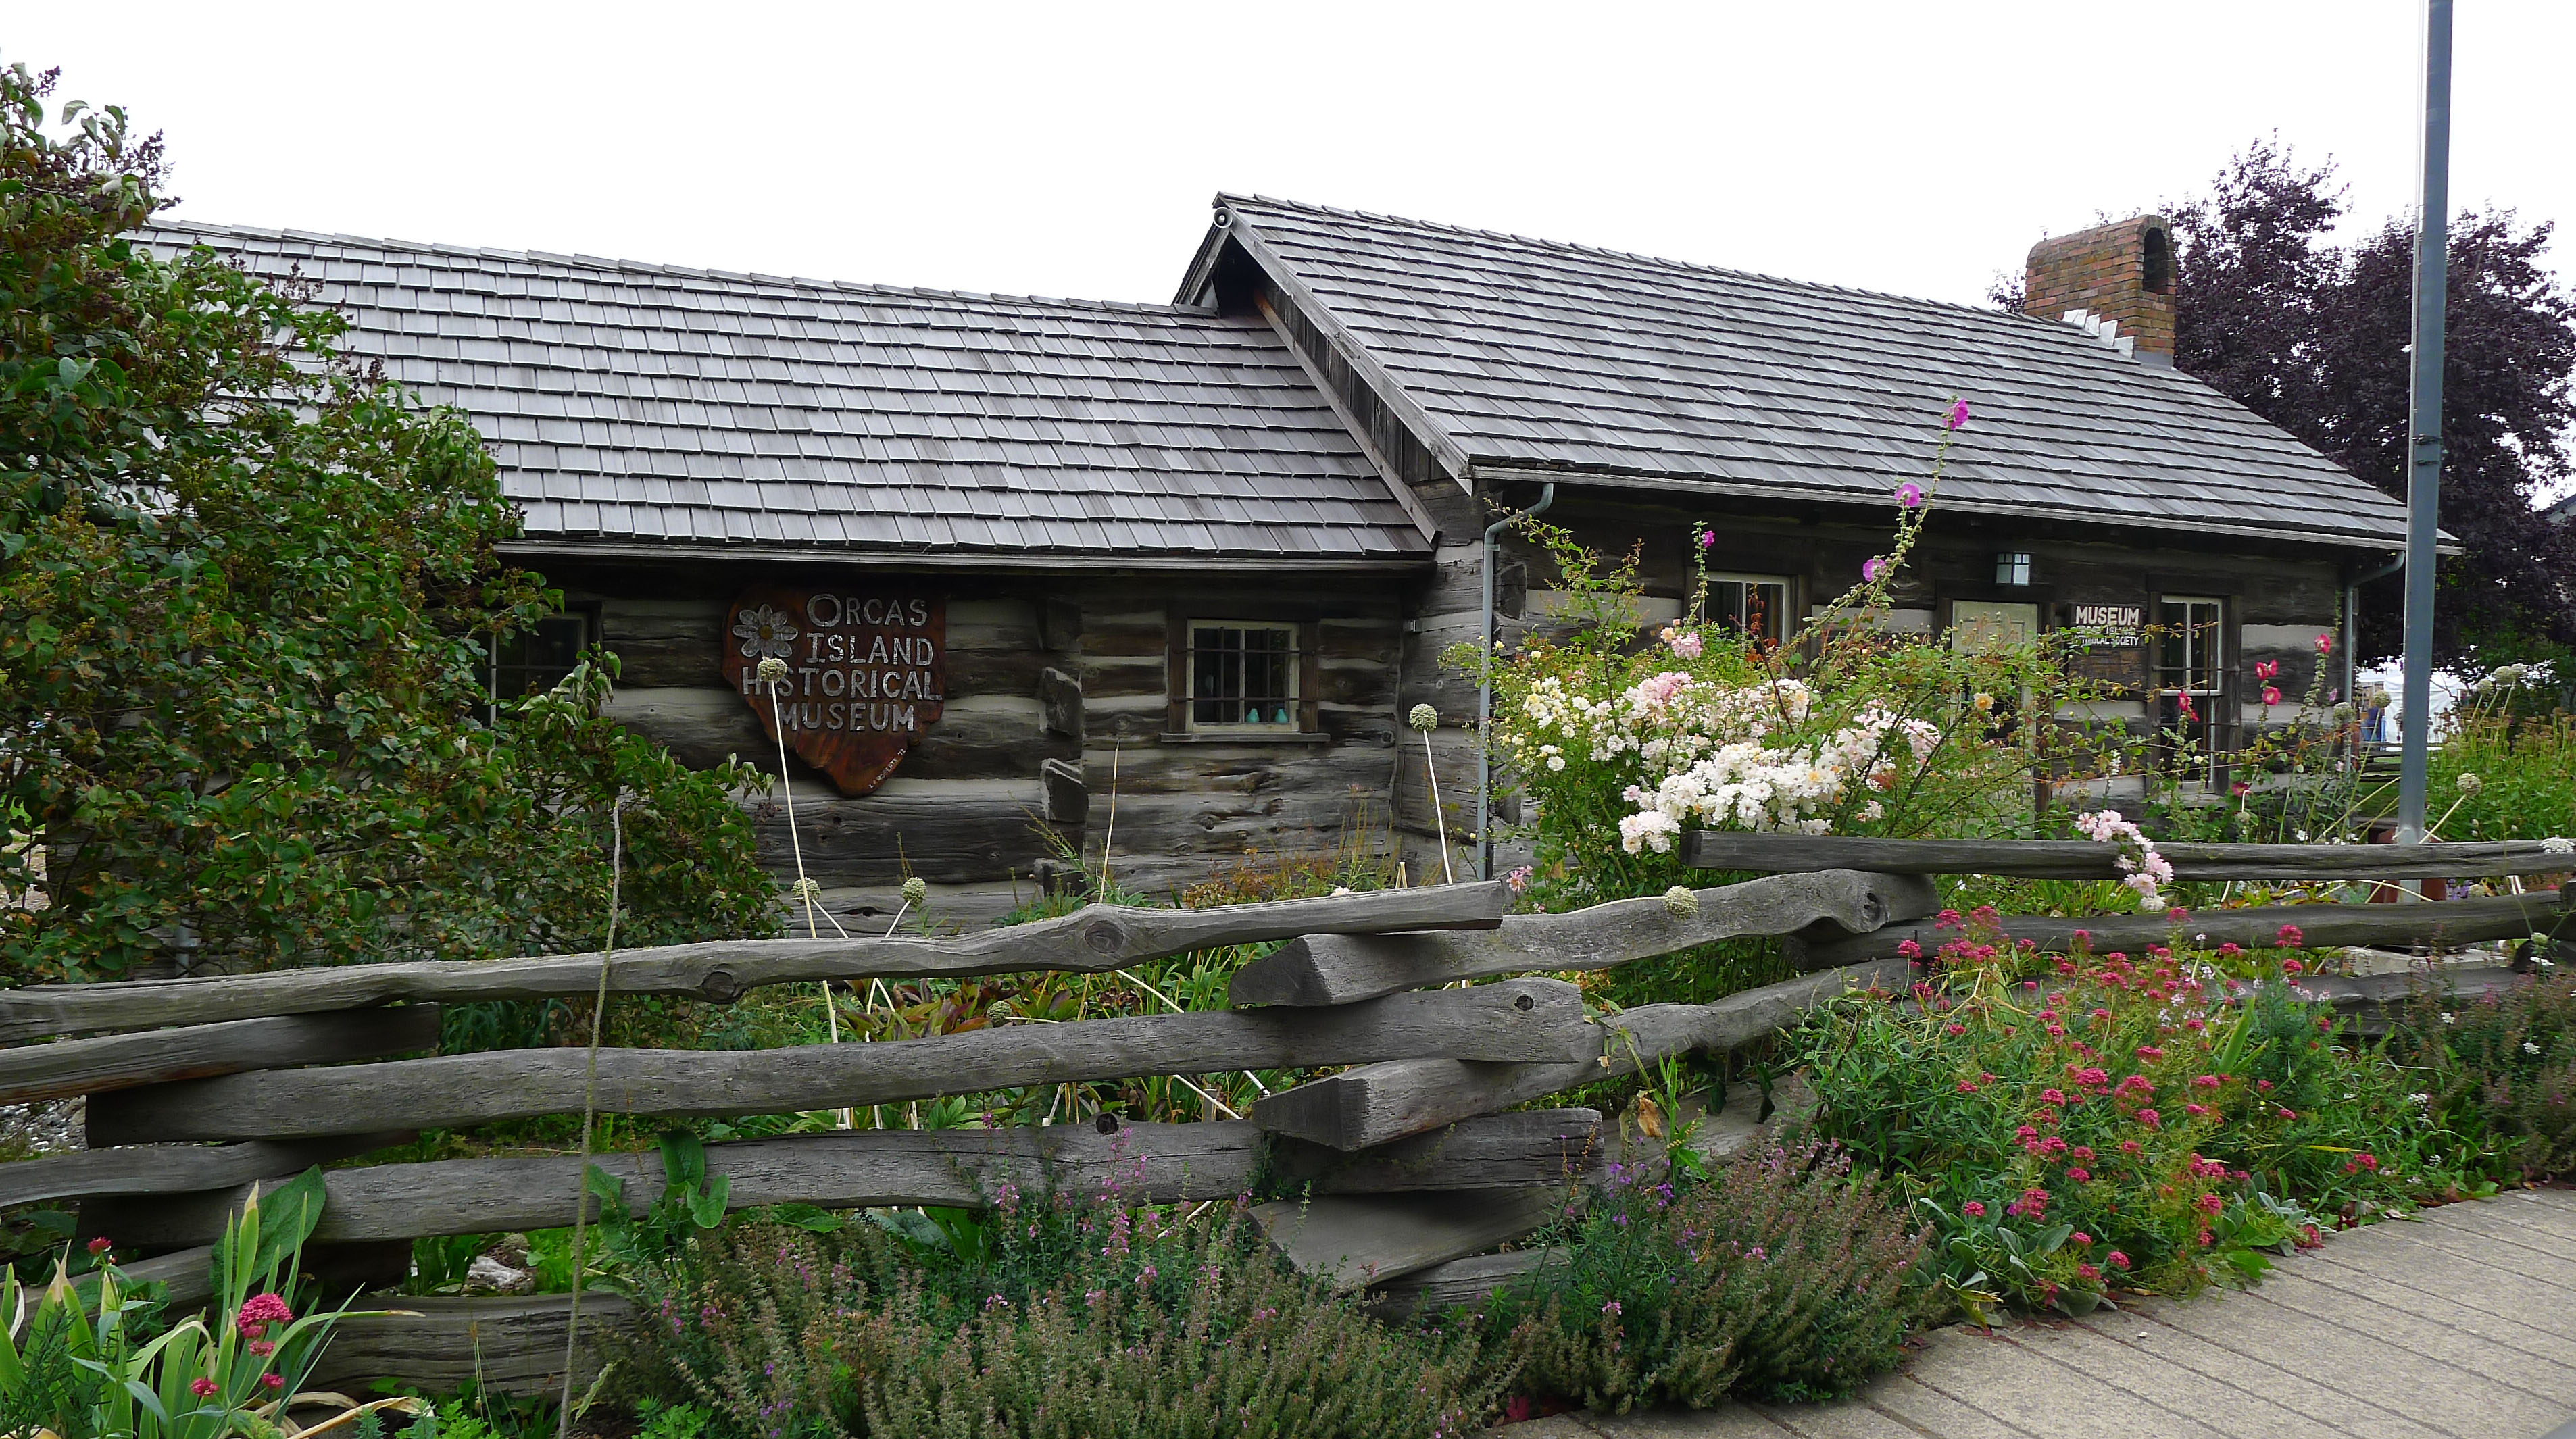 eastsound personals Buckhorn farm bungalow is located on a ten-acre farm near the north shore of orcas island this family vacation cottage enjoys a wonderful country-farm atmosphere but is only 5 minutes away.